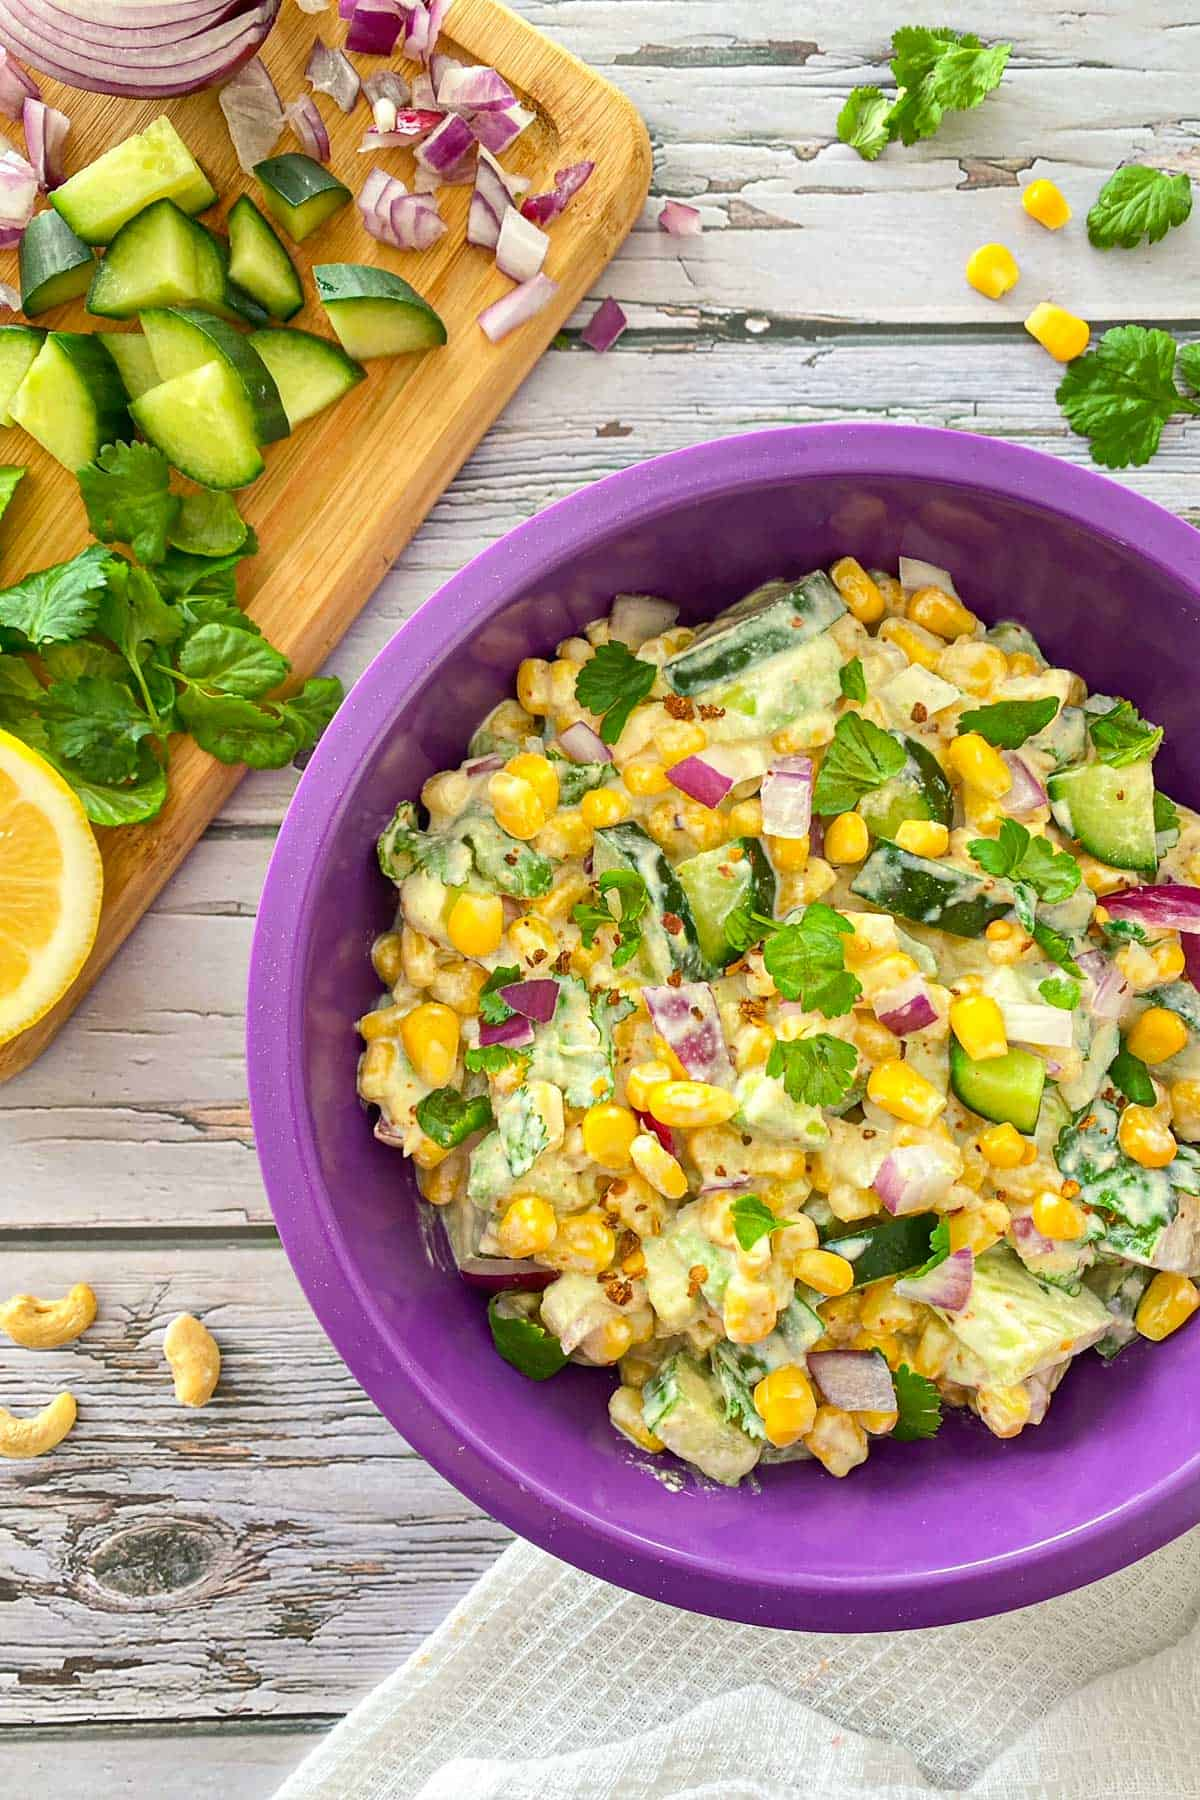 Bowl filled with vegan elote salad with cashews, corn and cilantro scattered around.